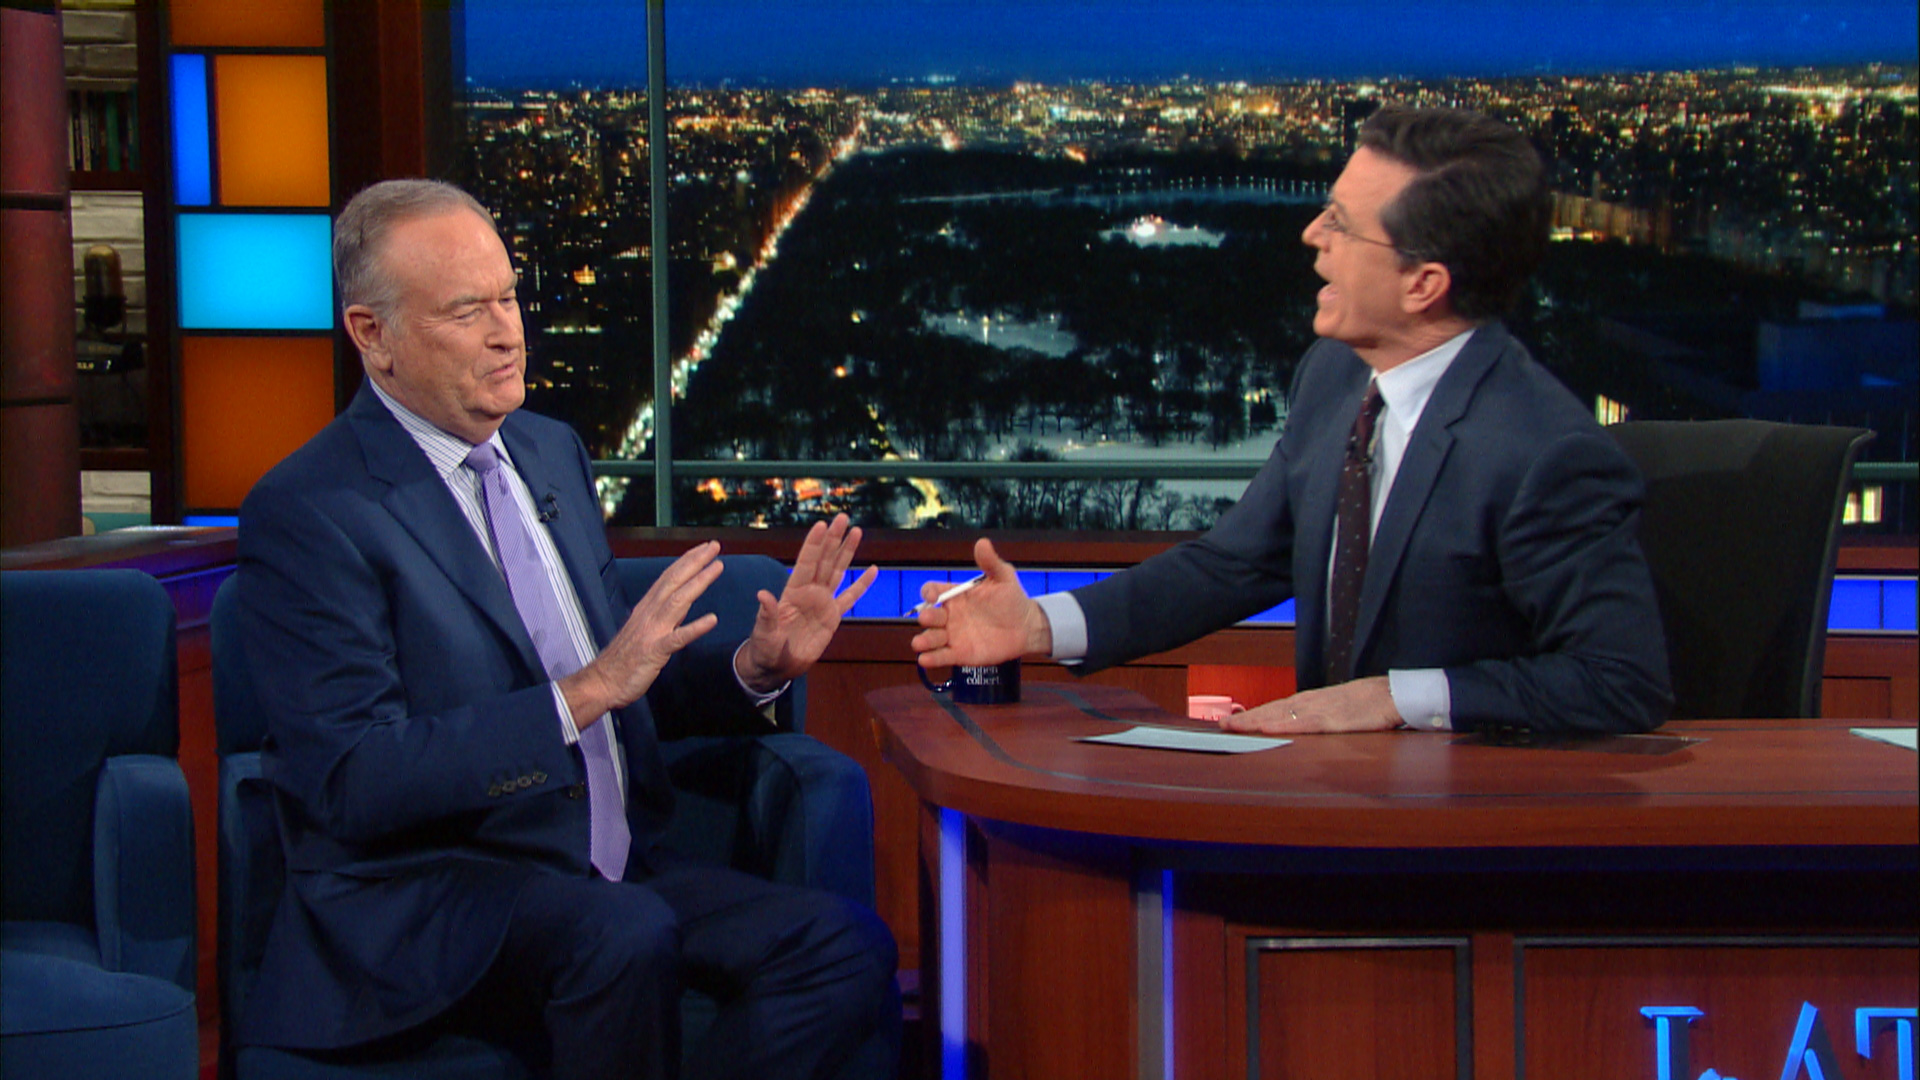 Bill O'Reilly Explains Why Trump And Sanders Are The Same